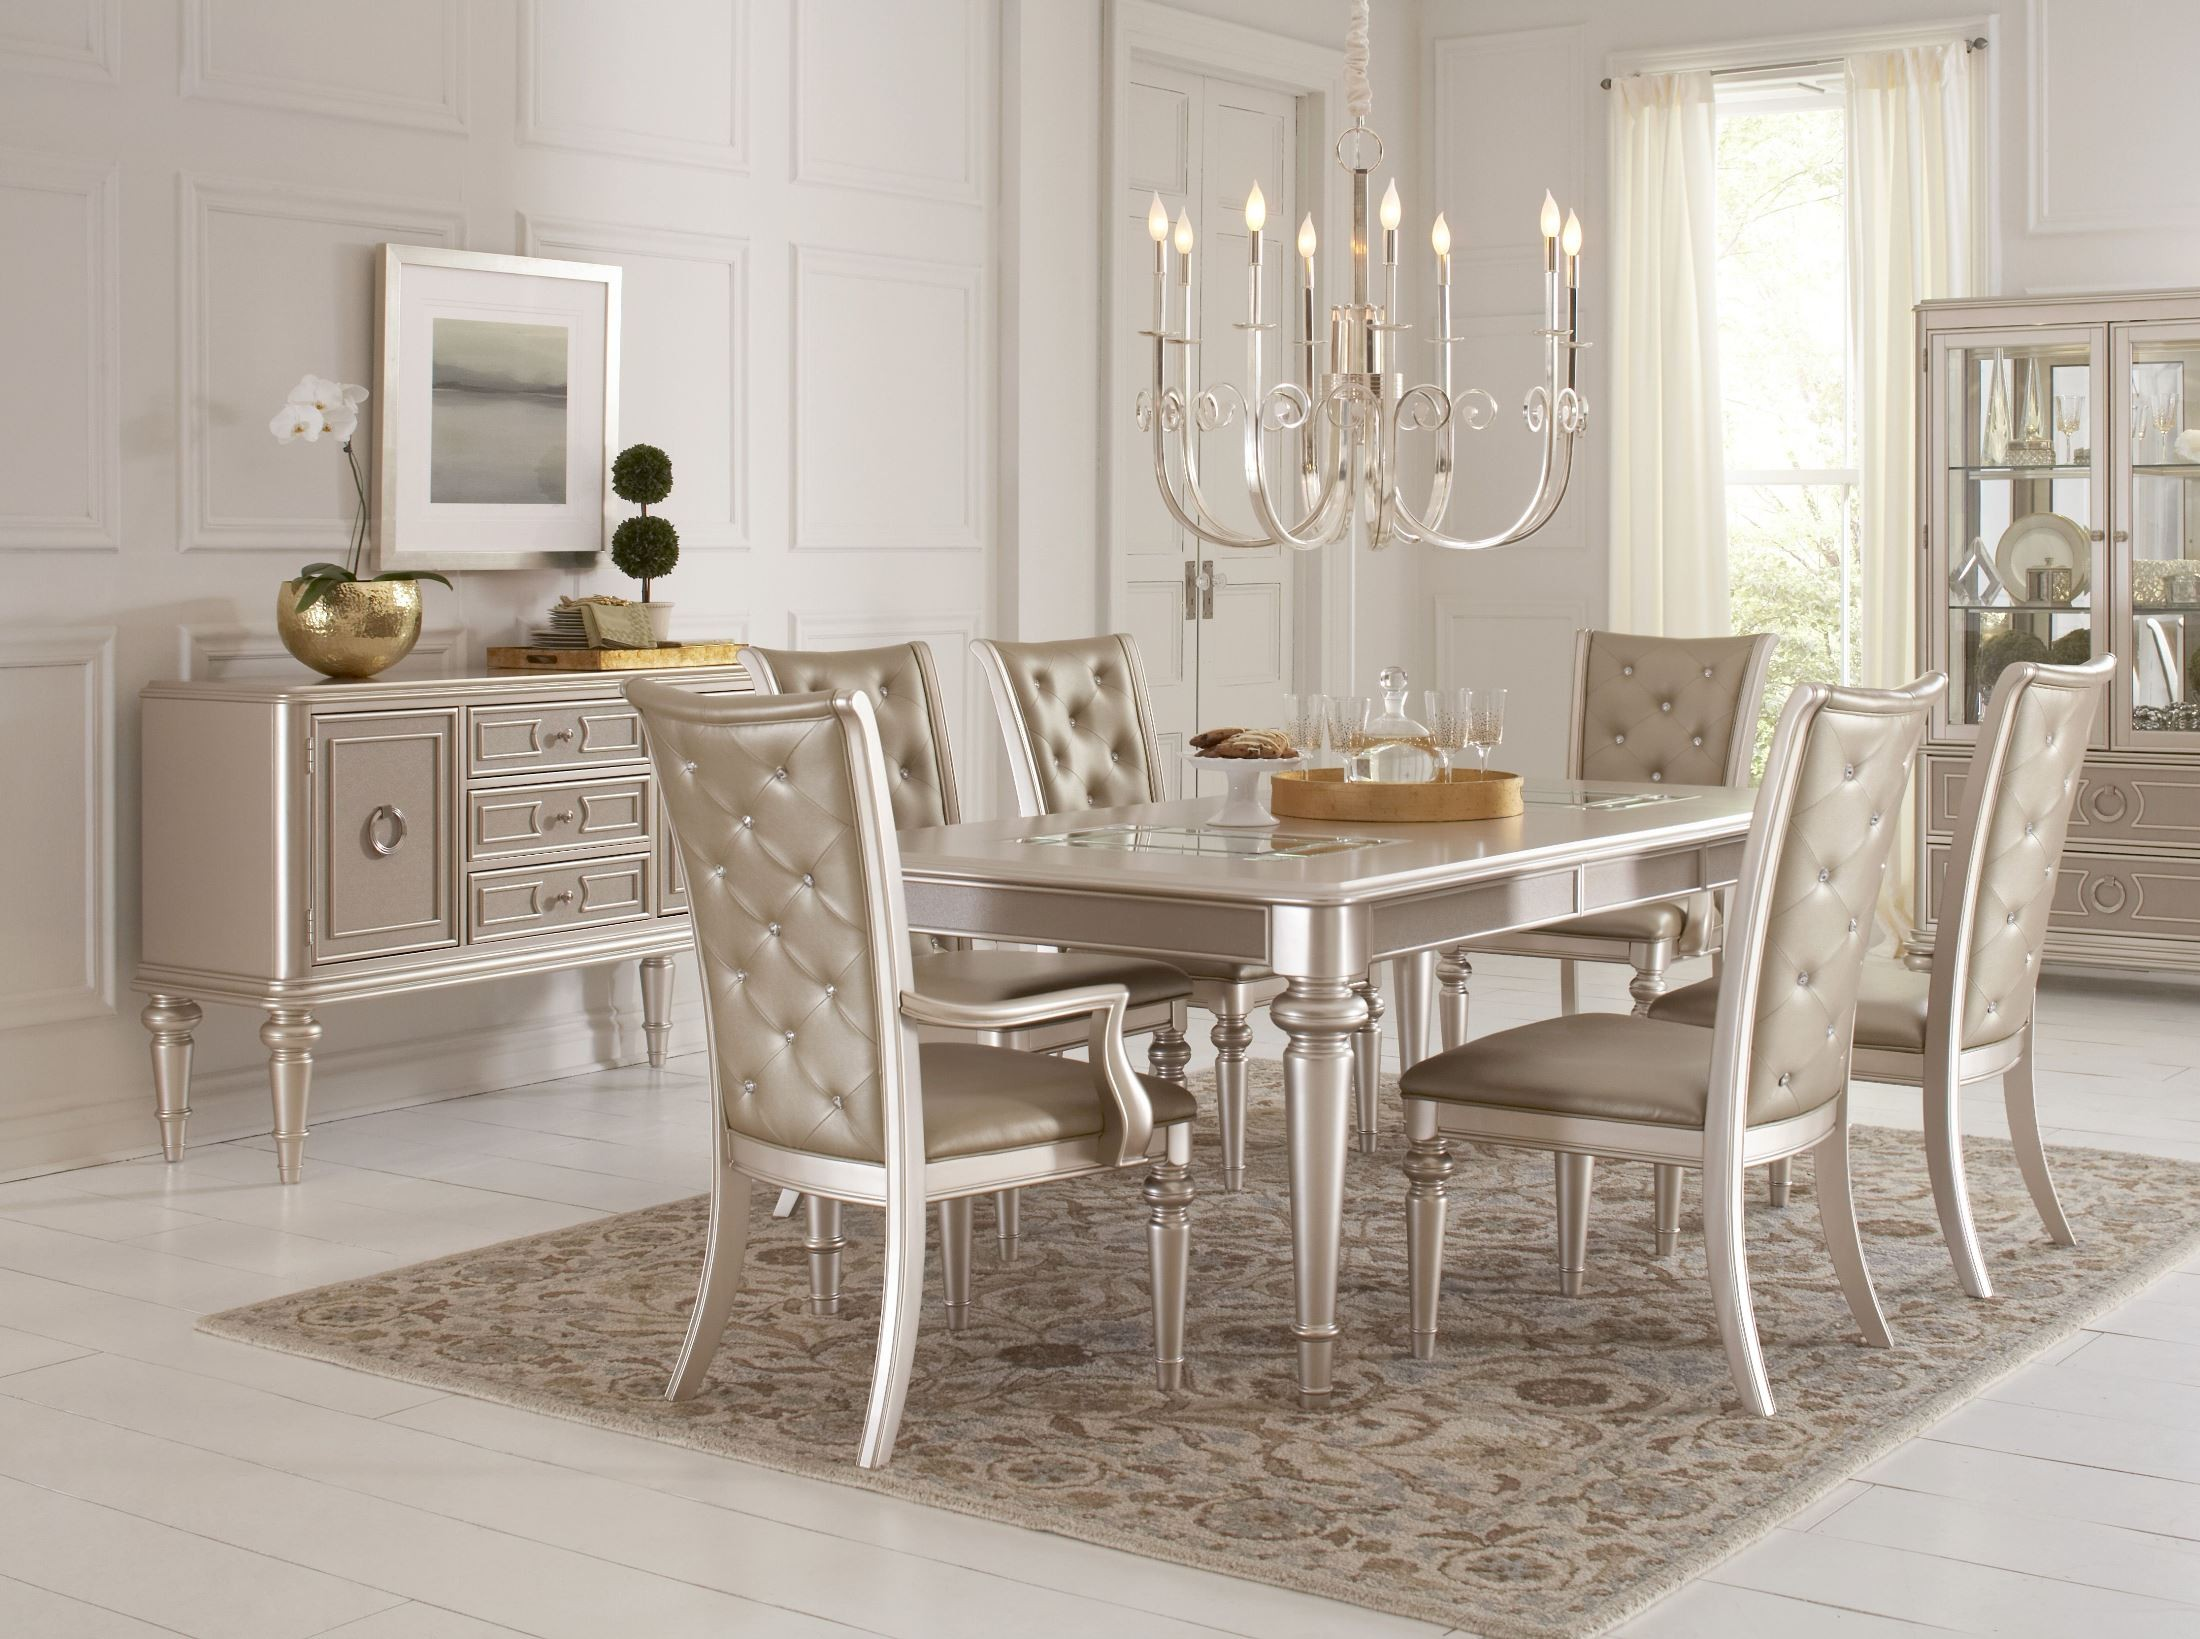 Dynasty Gold Metallic Extendable Rectangular Leg Dining  : s044 135146 rp4 from colemanfurniture.com size 2200 x 1639 jpeg 555kB